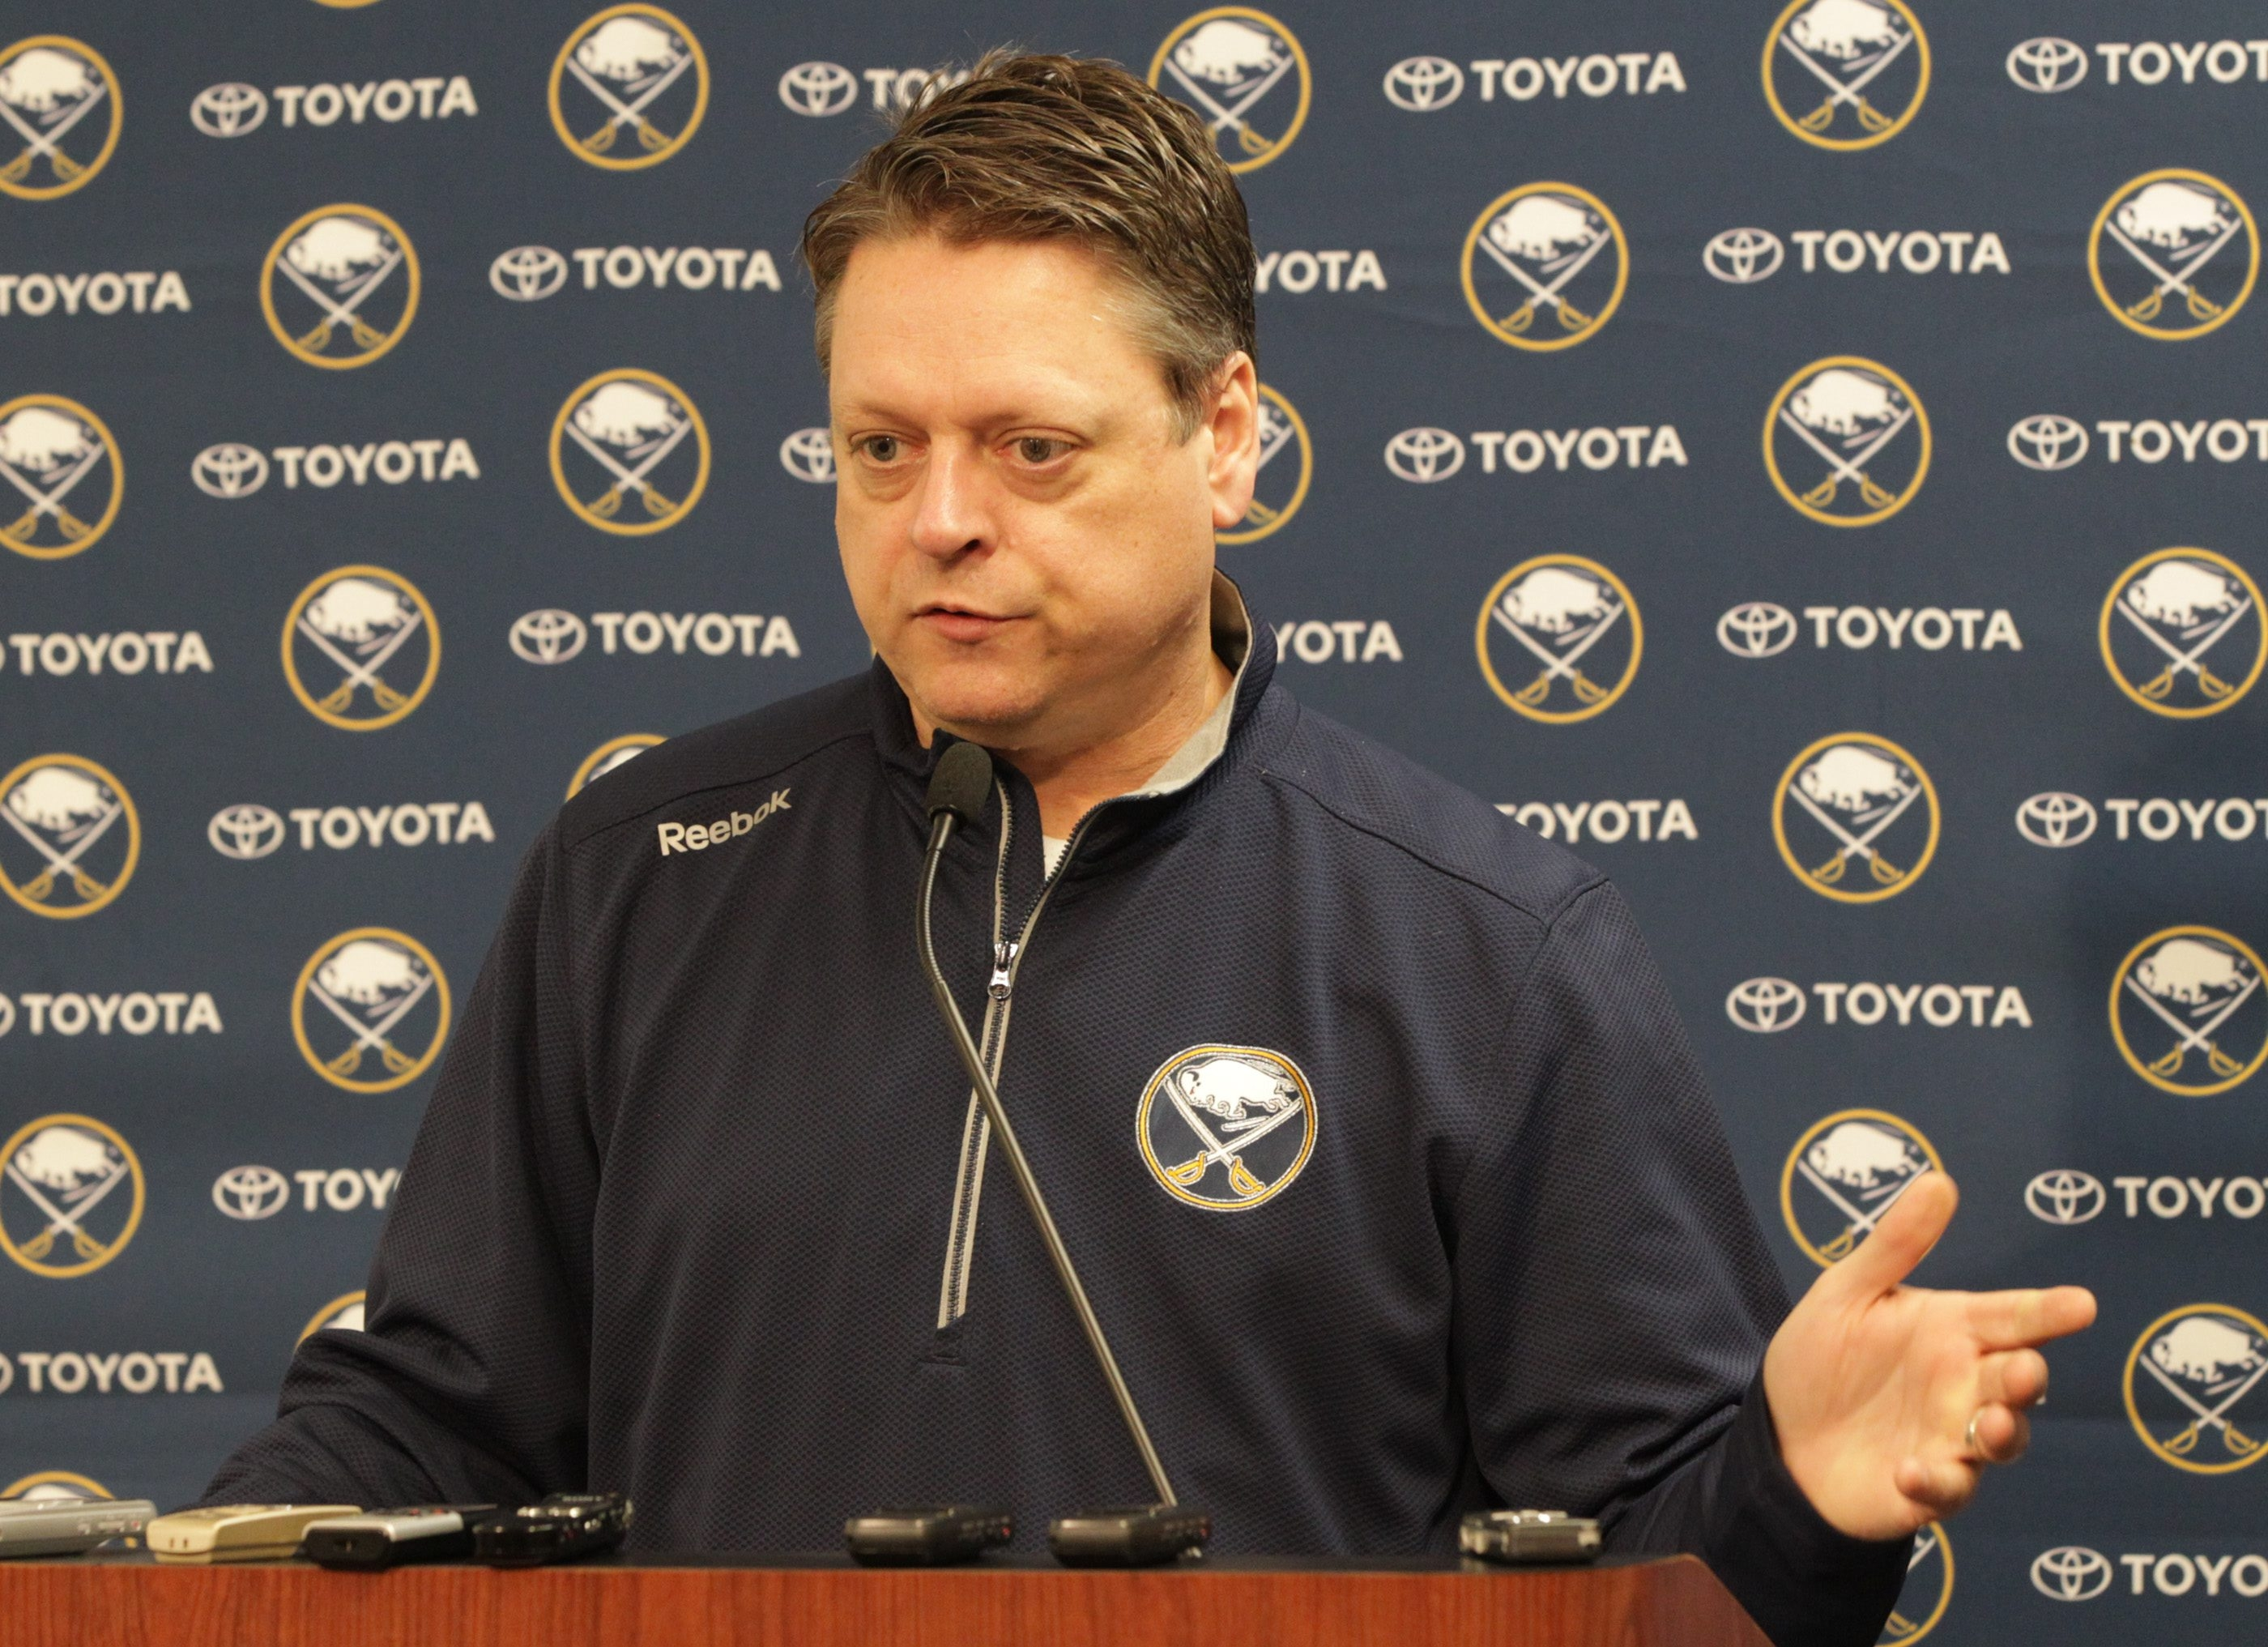 Sabres GM Tim Murray said he is excited about the potential of Hudson Fasching and Michal Neuvirth, among others.